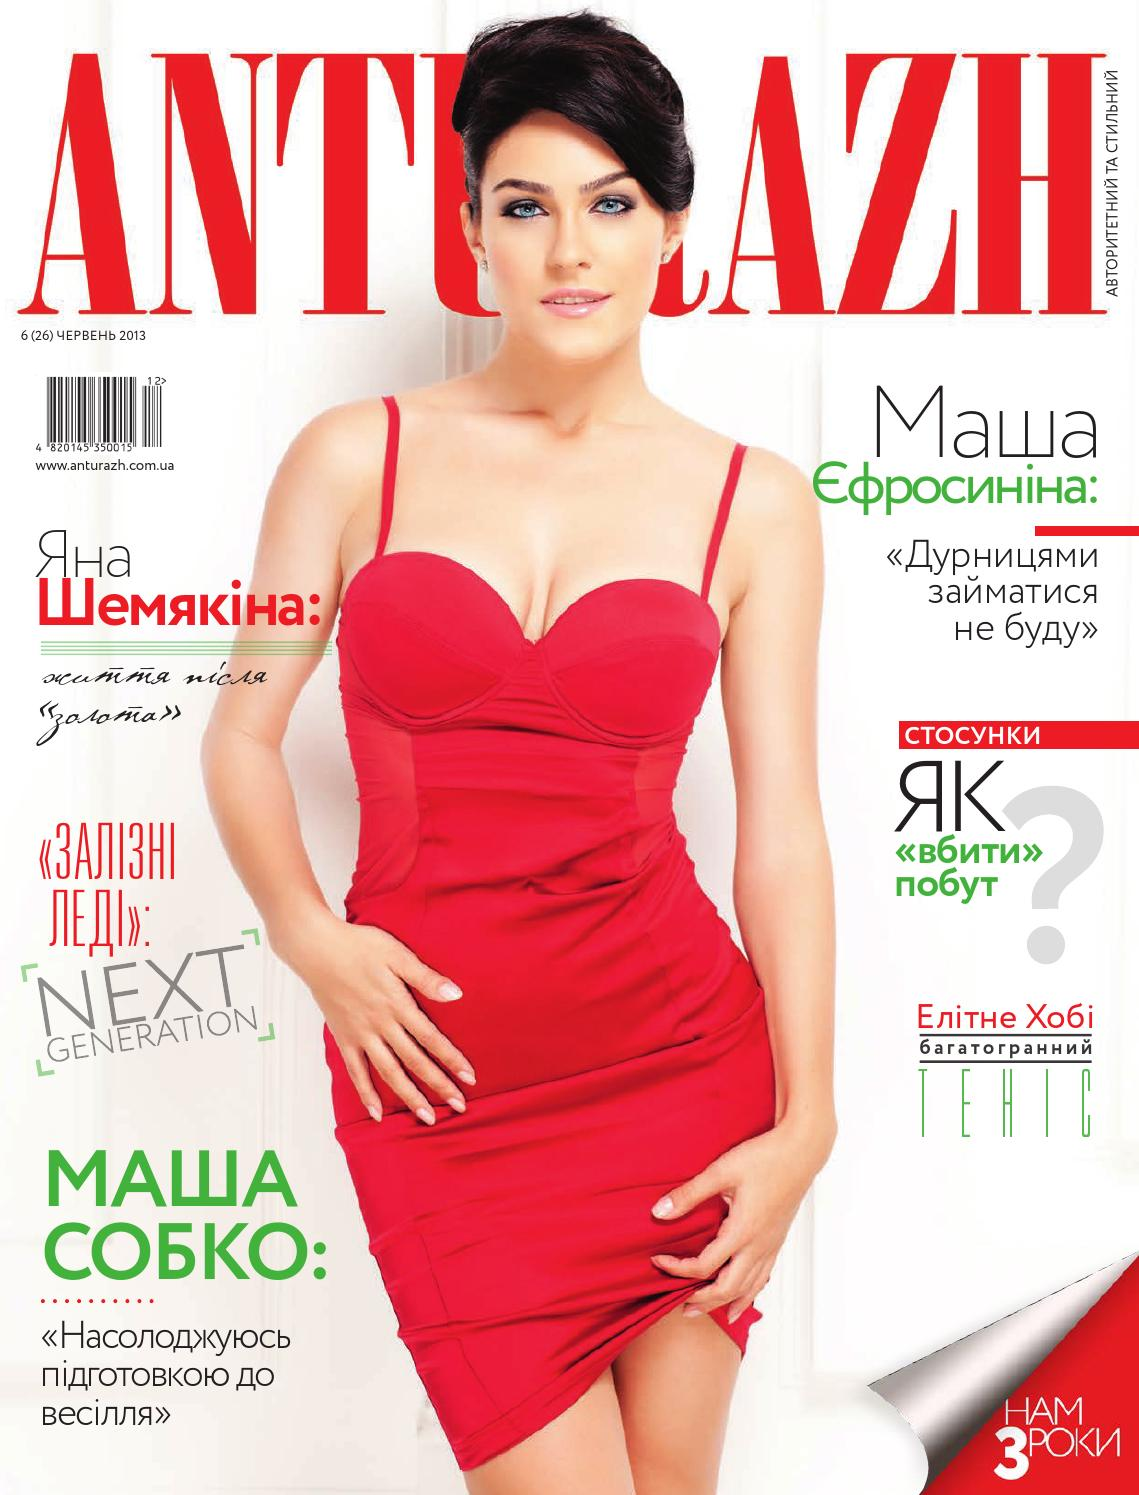 Антураж №26 by MAGAZINE ANTURAZH - issuu 1ed824c1cbcfb